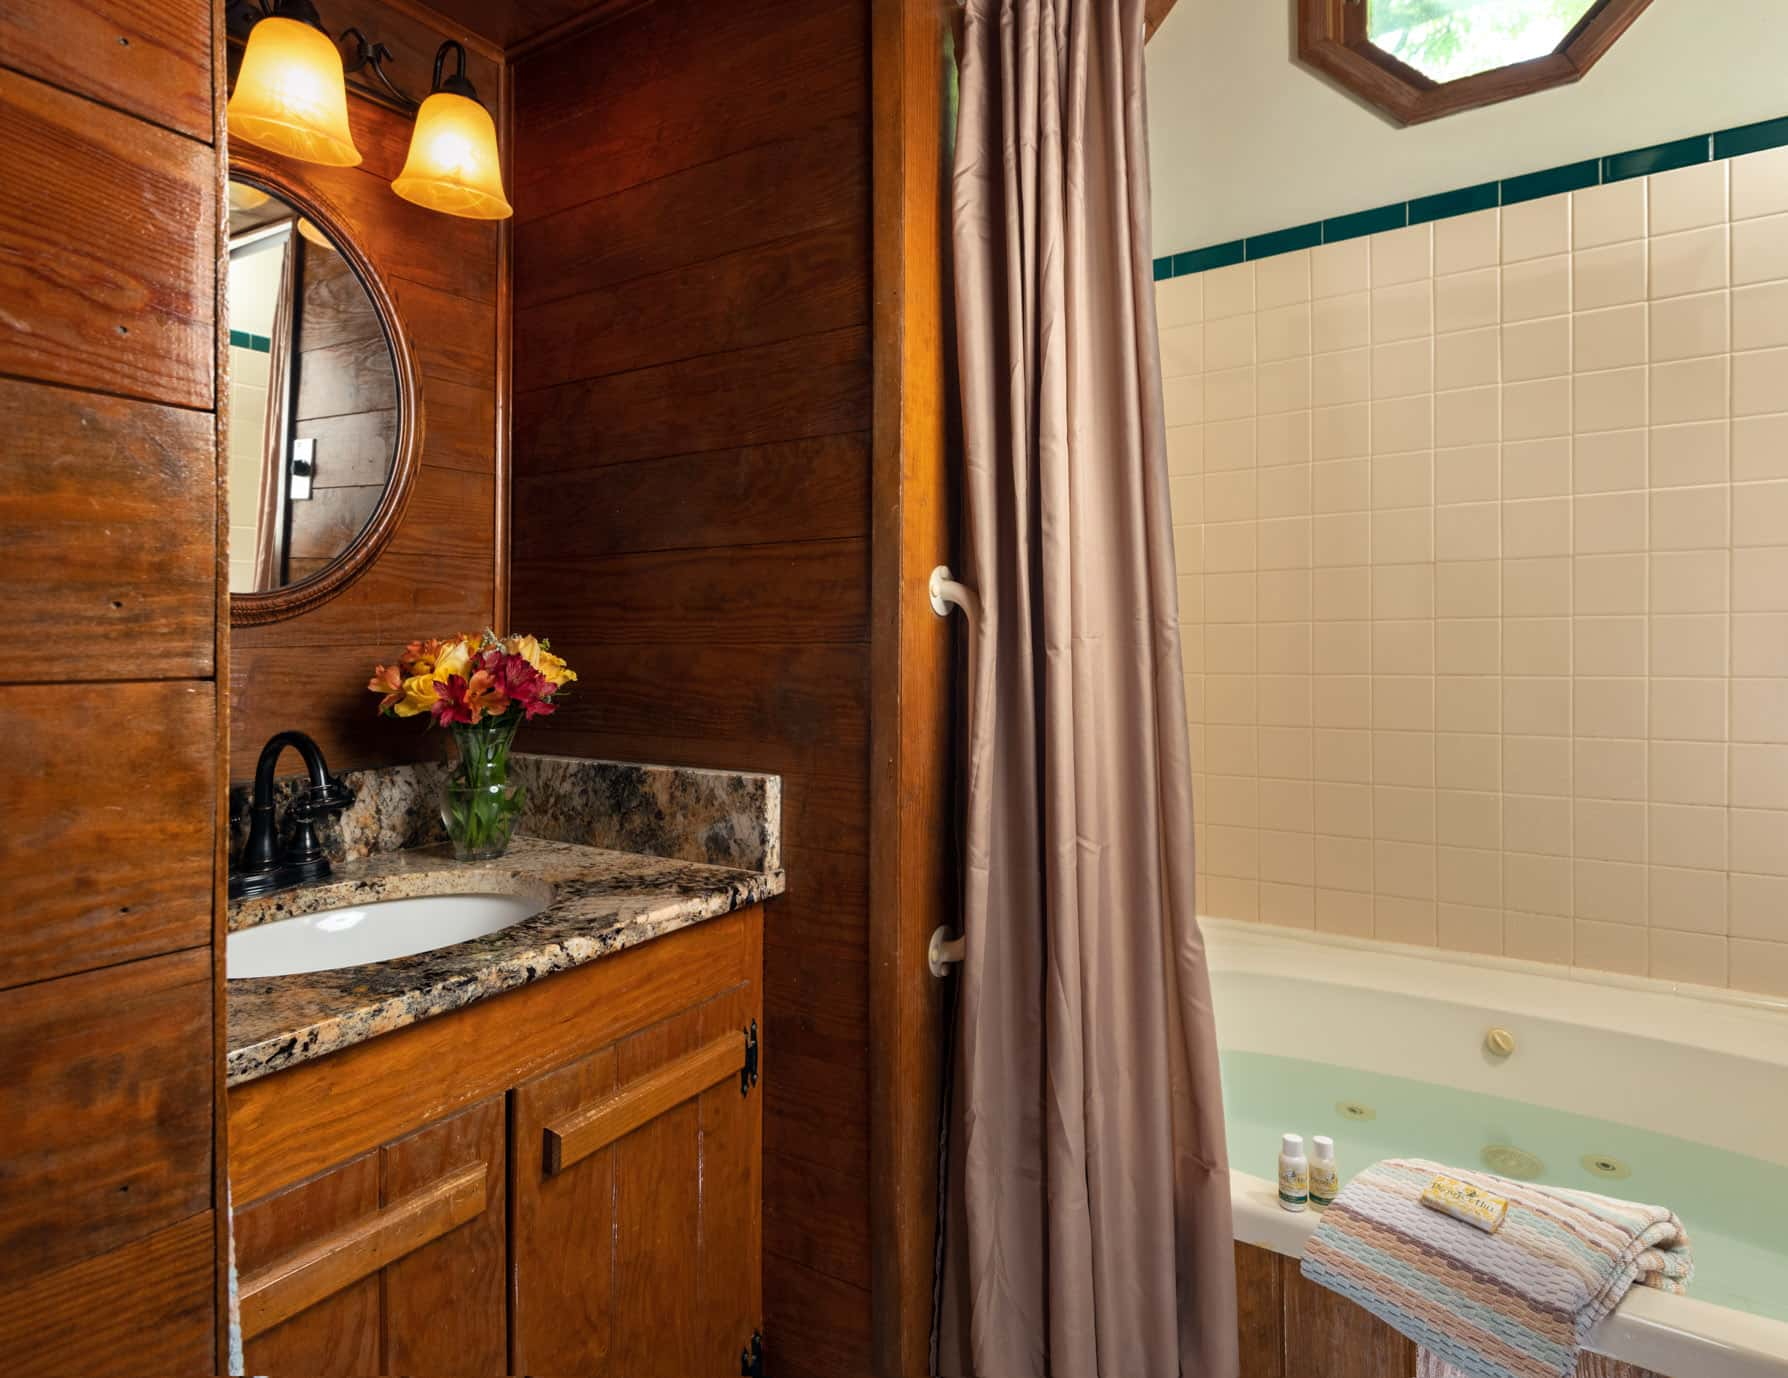 Bathroom with a jetted tub and wooden cabinets and walls